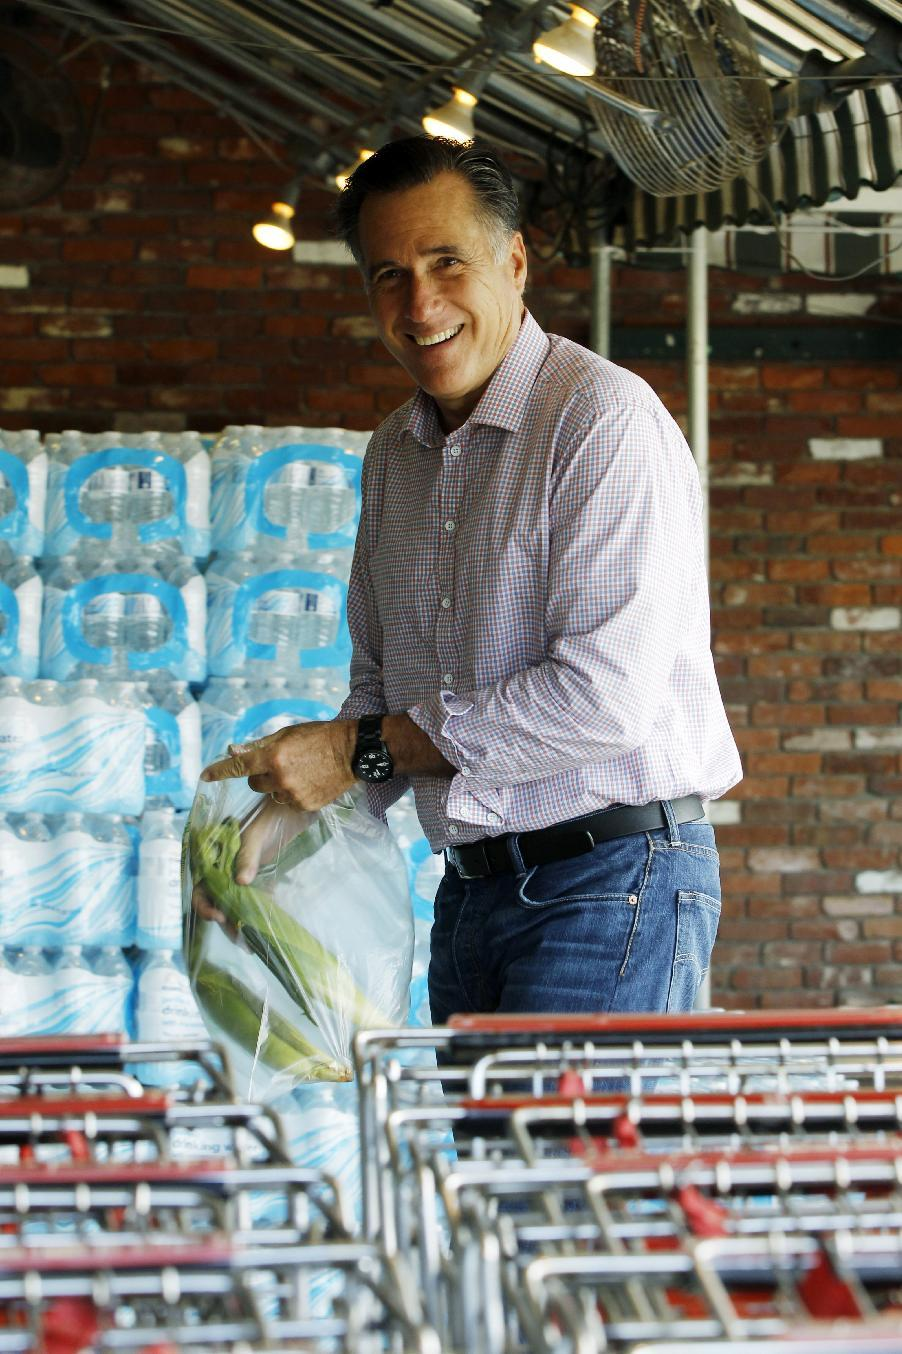 Republican presidential candidate, former Massachusetts Gov. Mitt Romney puts ears of corn into a plastic bag as he arrives at Hunter's Shop and Save supermarket in Wolfeboro, N.H., Monday, Aug. 6, 2012. (AP Photo/Charles Dharapak)